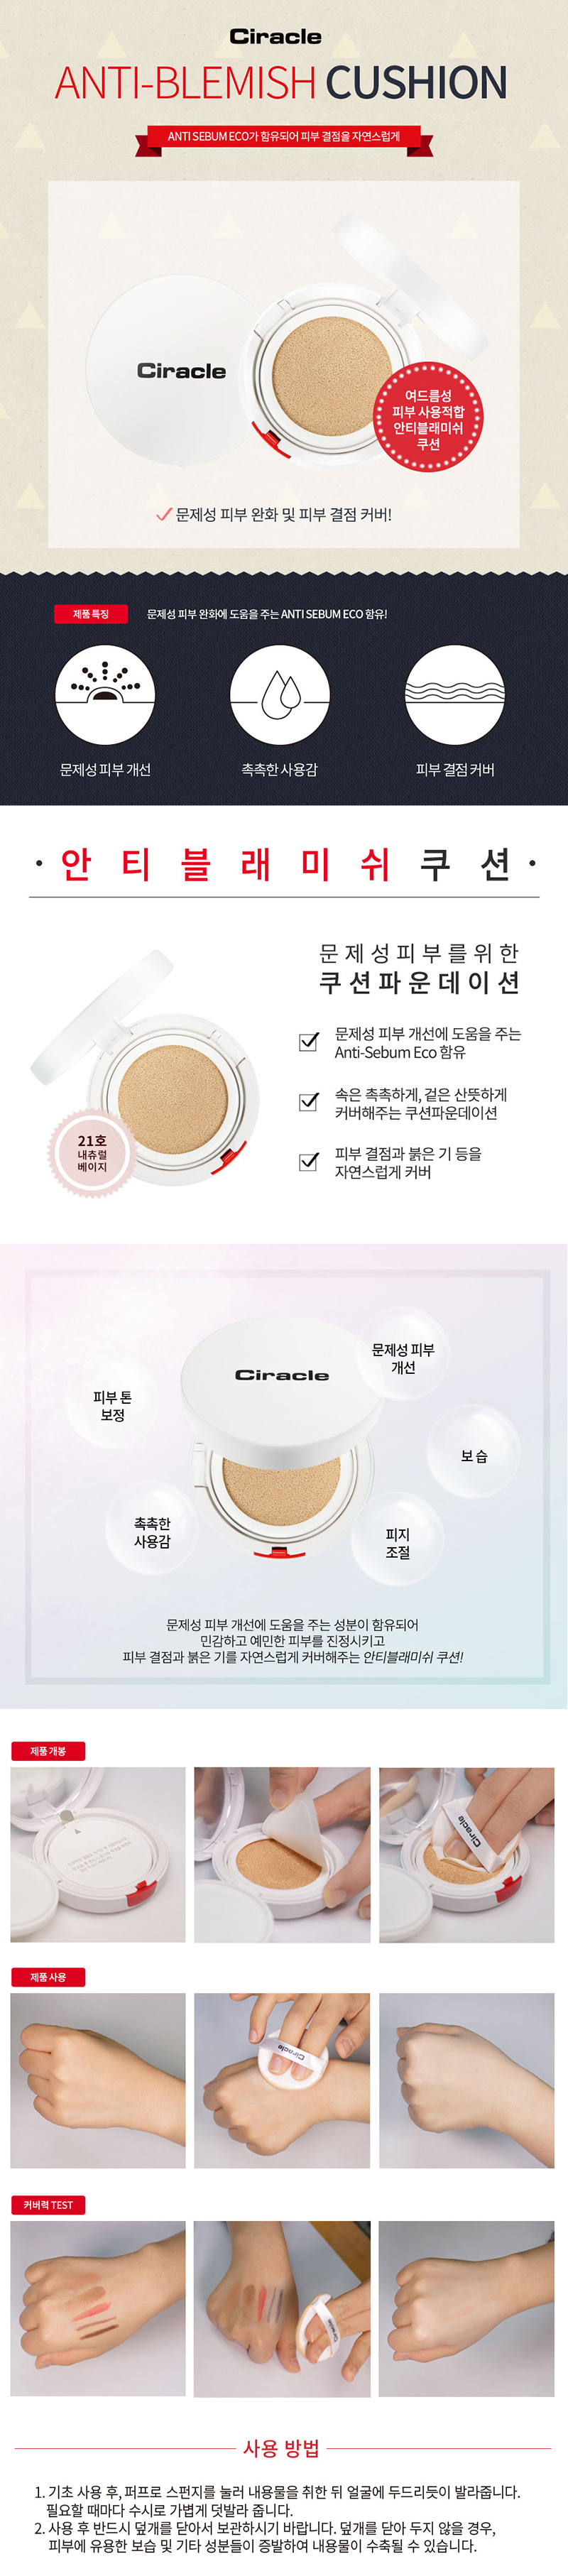 ciracle-anti-blemish-cushion-15g-1.jpg